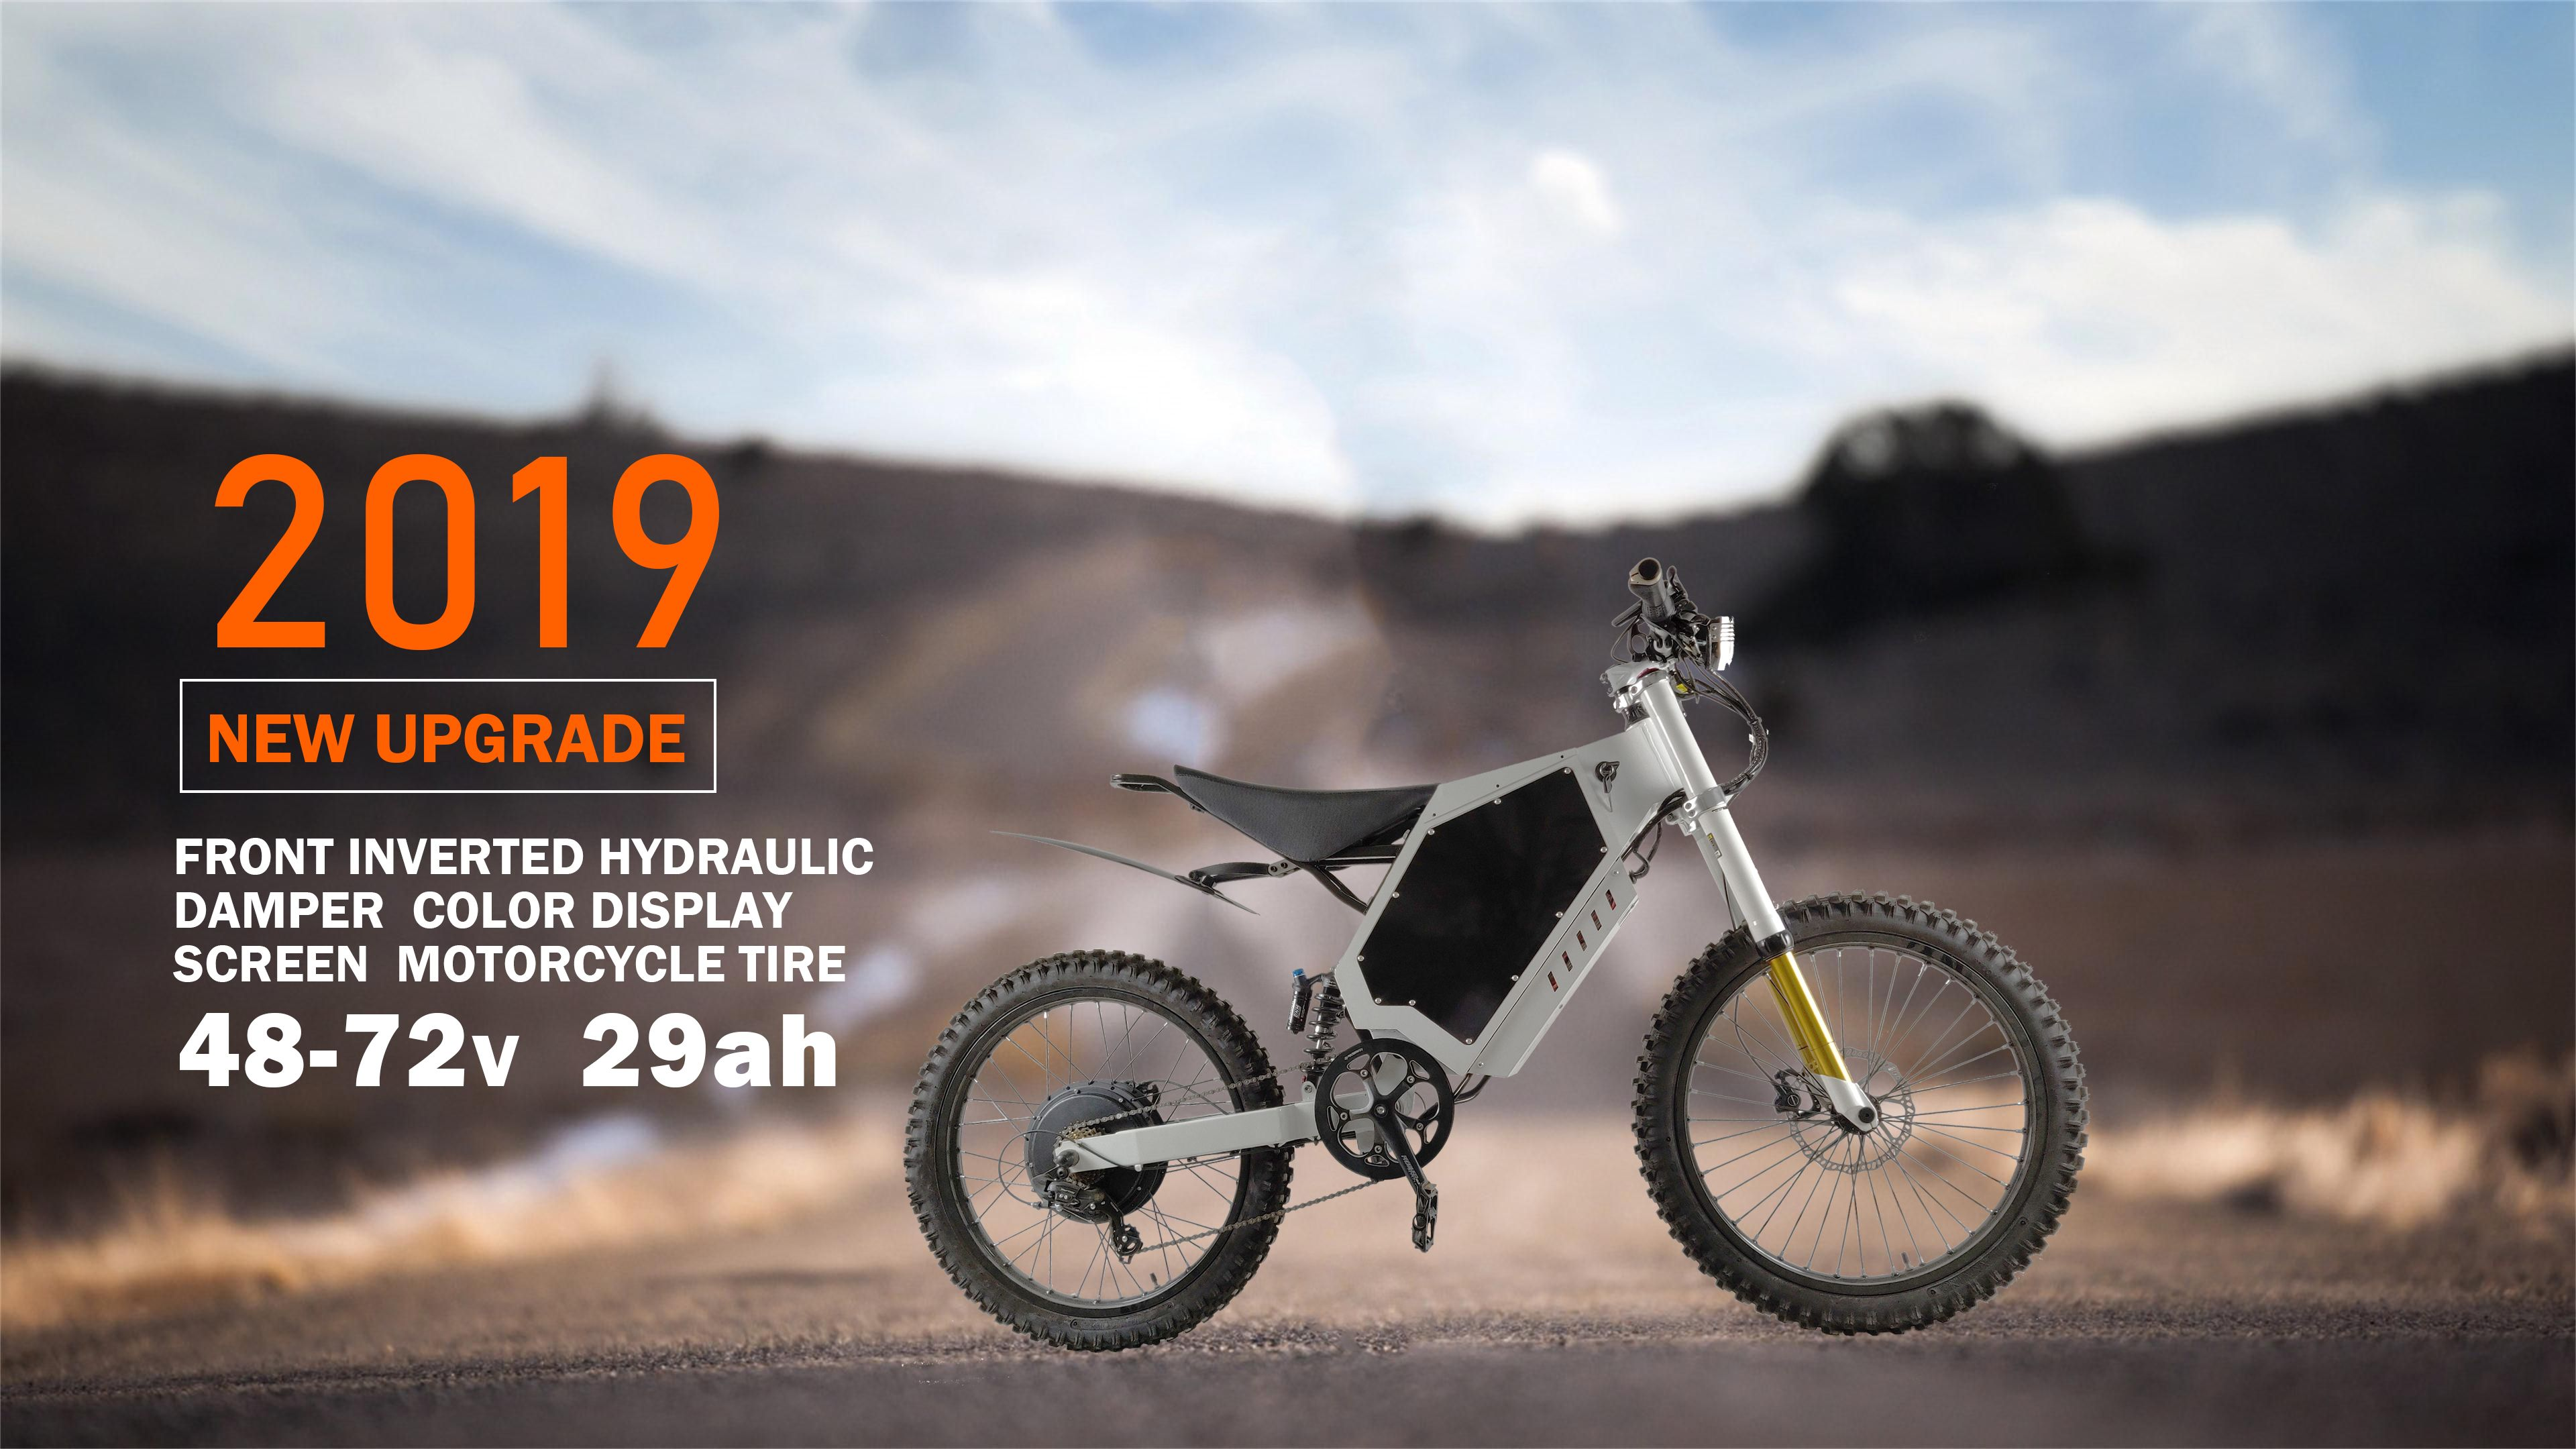 Enjoy Riding With 2019 New Style Electric Dirt Bike This Is Our